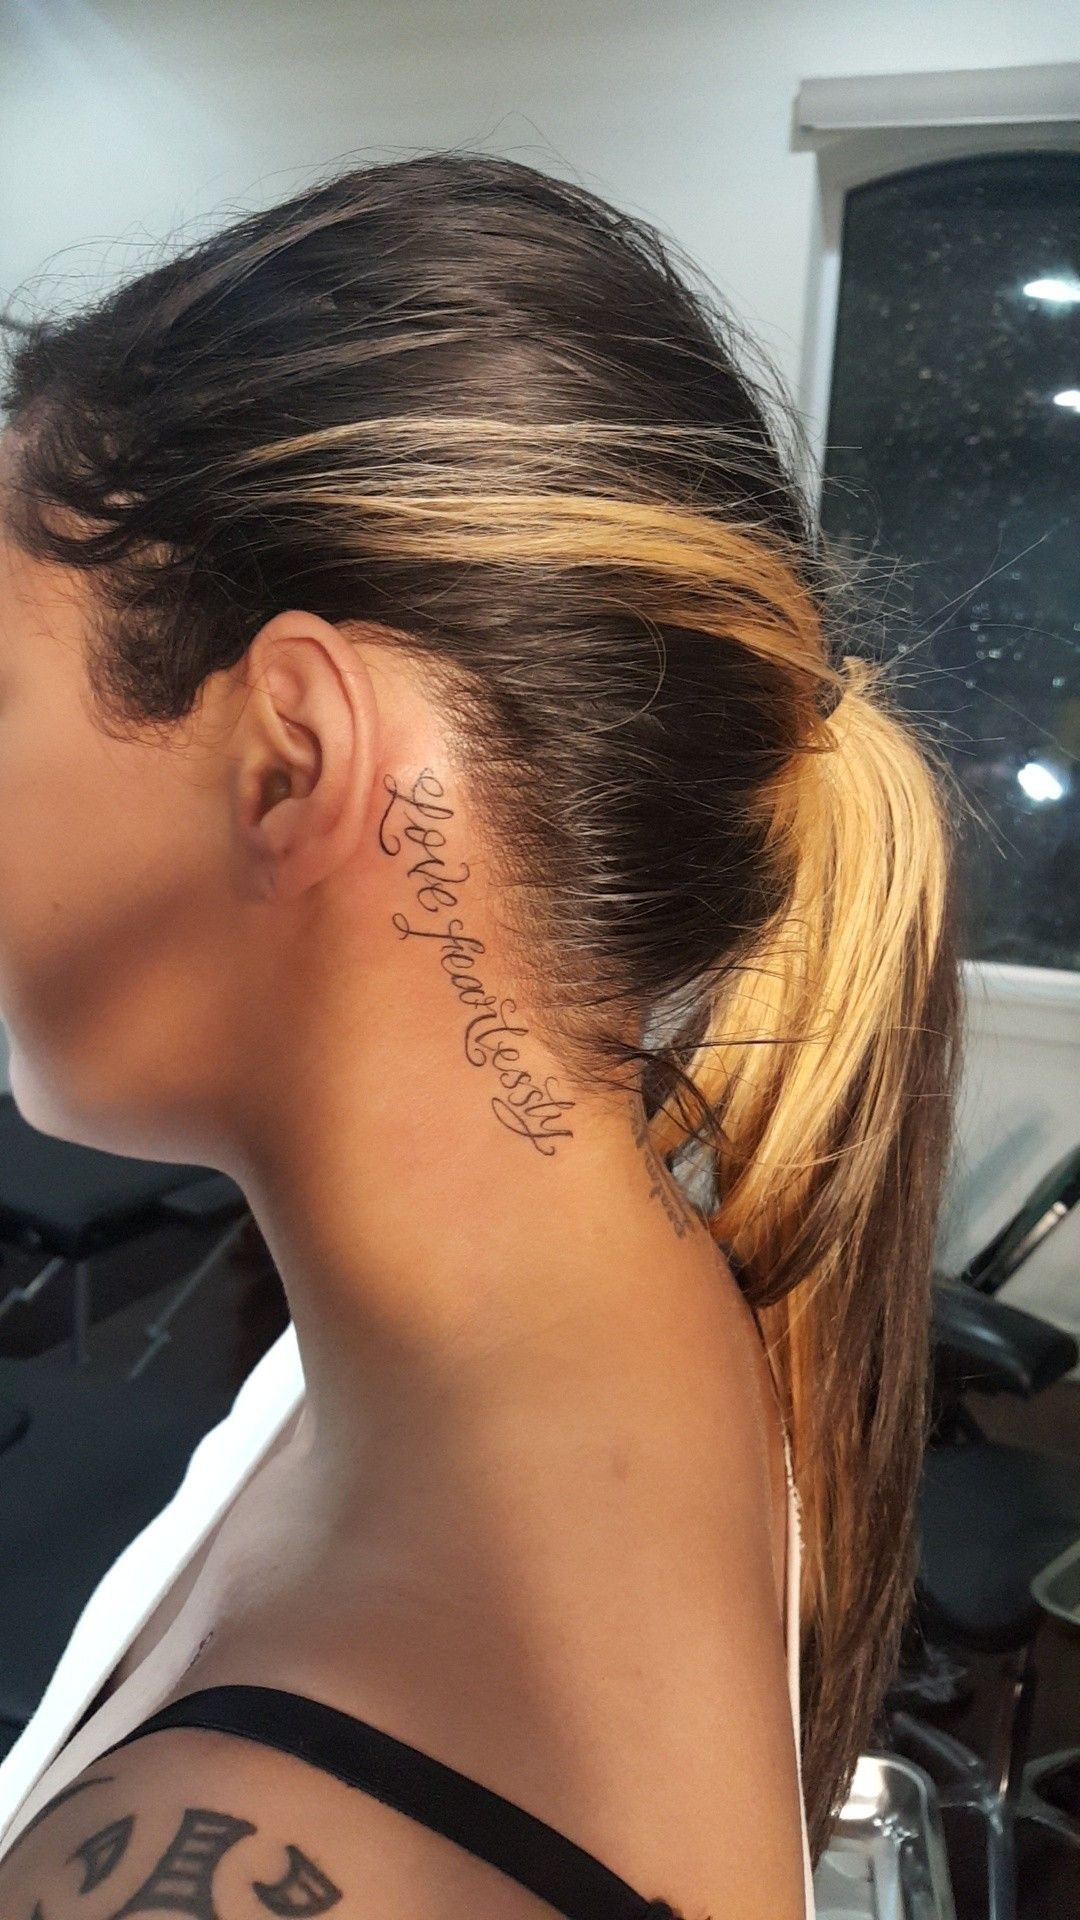 Number 14 Neck Tattoos Women Hairline Tattoos Side Neck Tattoo